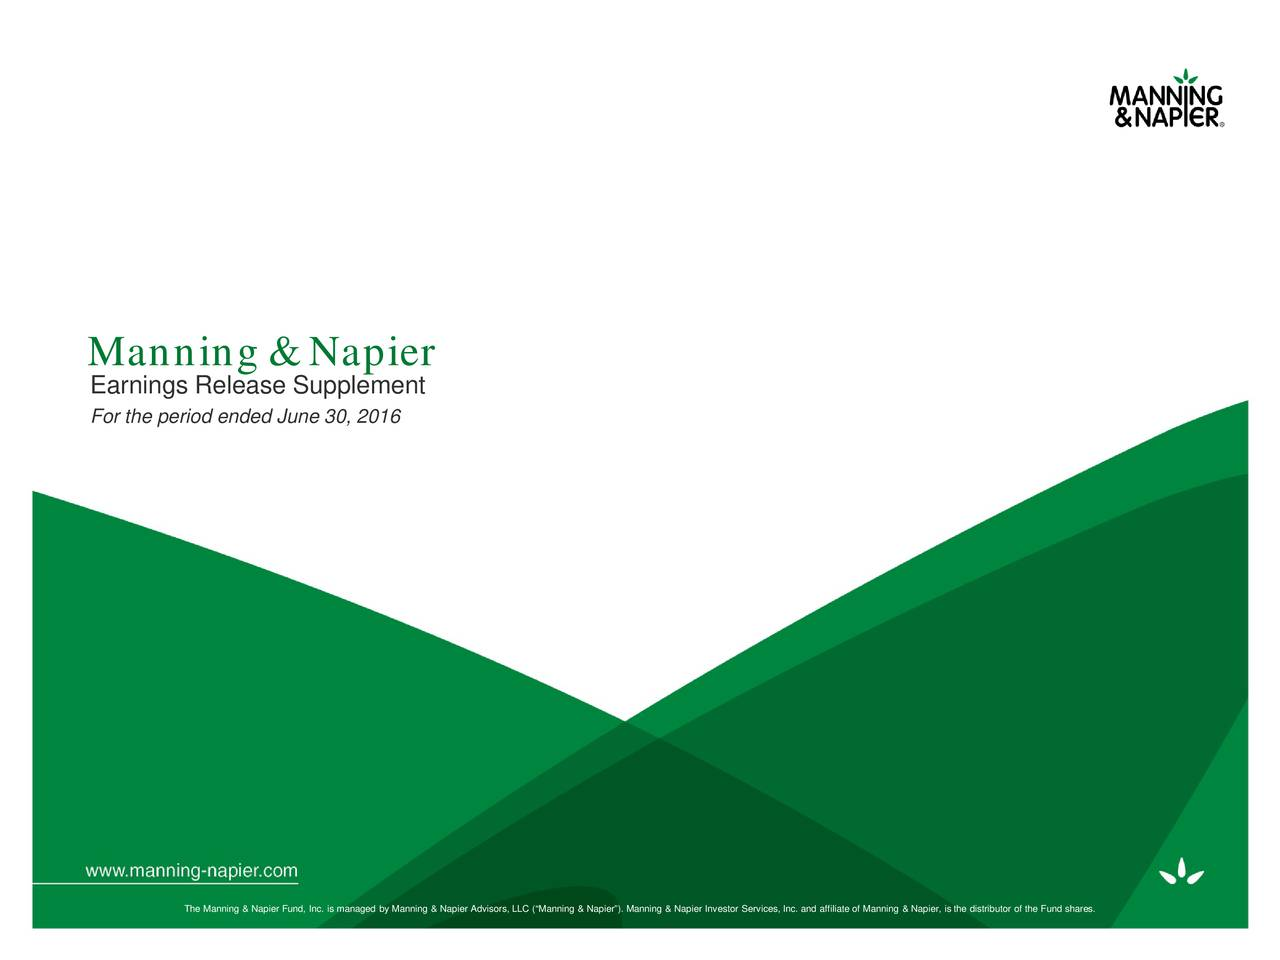 Earnings Release Supplement For the period ended June 30, 2016 The Manning & Napier Fund, Inc. is managed by Manning & Napier Advisors, LLC (Manning & Napier). Manning & Napier InvestorServices, Inc. and affiliate of Manning & Napier, is the distributor of the Fund shares.